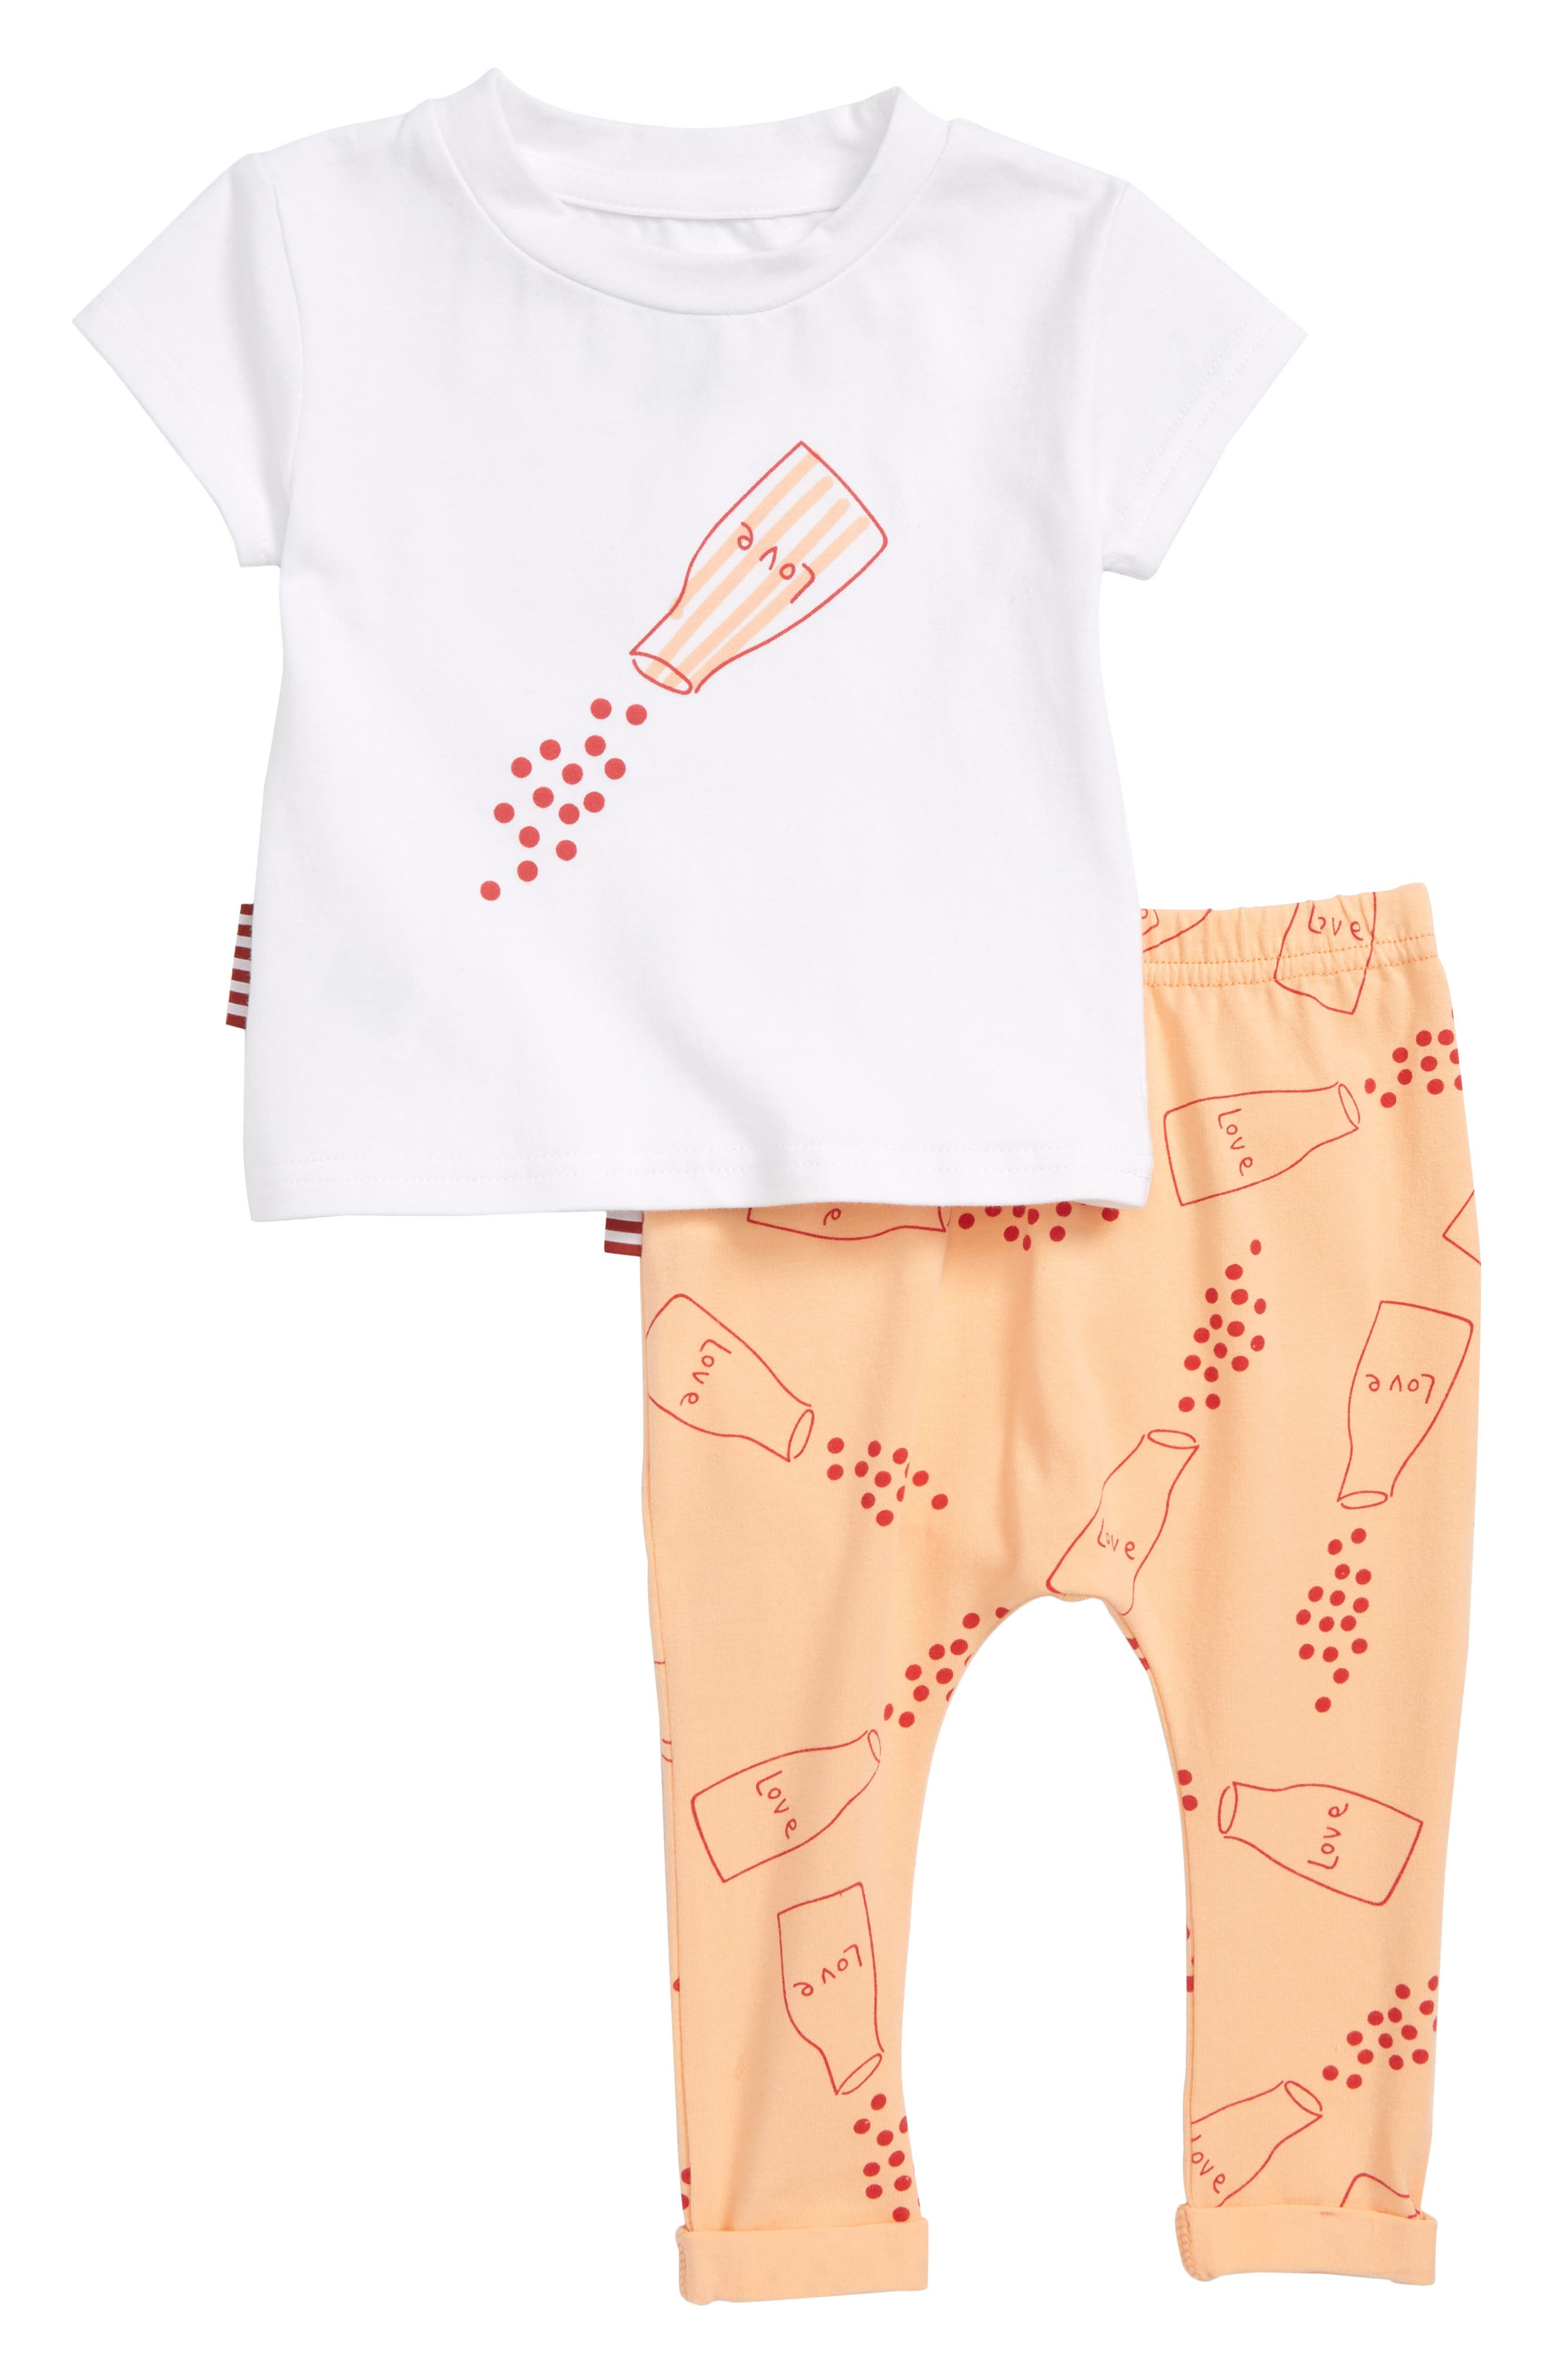 Sprinkle Love Print Tee & Leggings Set,                             Main thumbnail 1, color,                             109